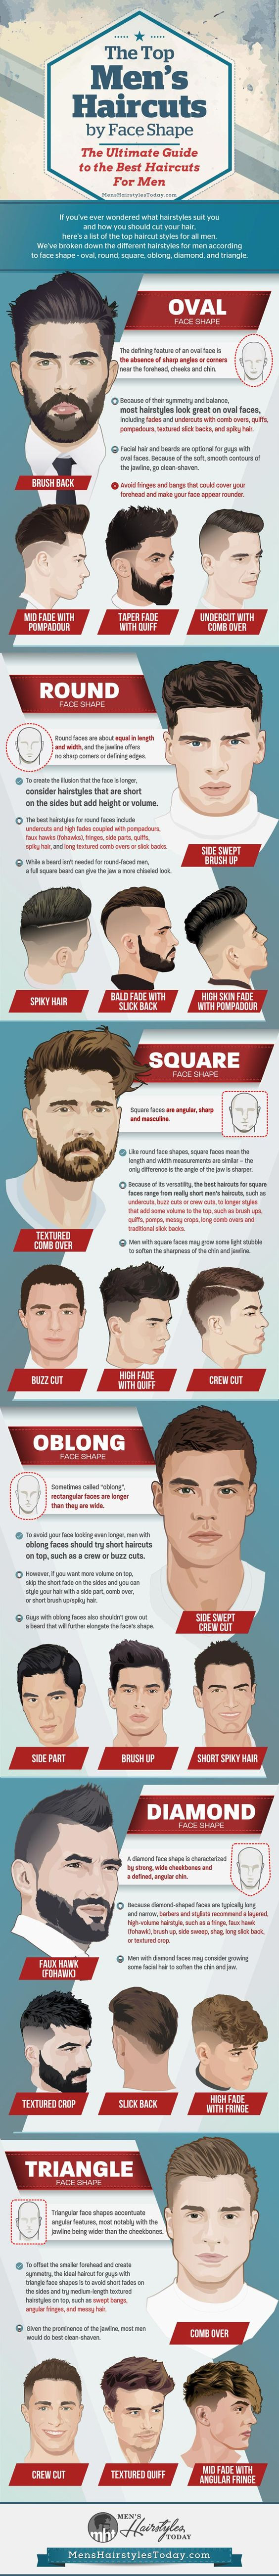 The_Best_Hair_Style_For_Your_Face